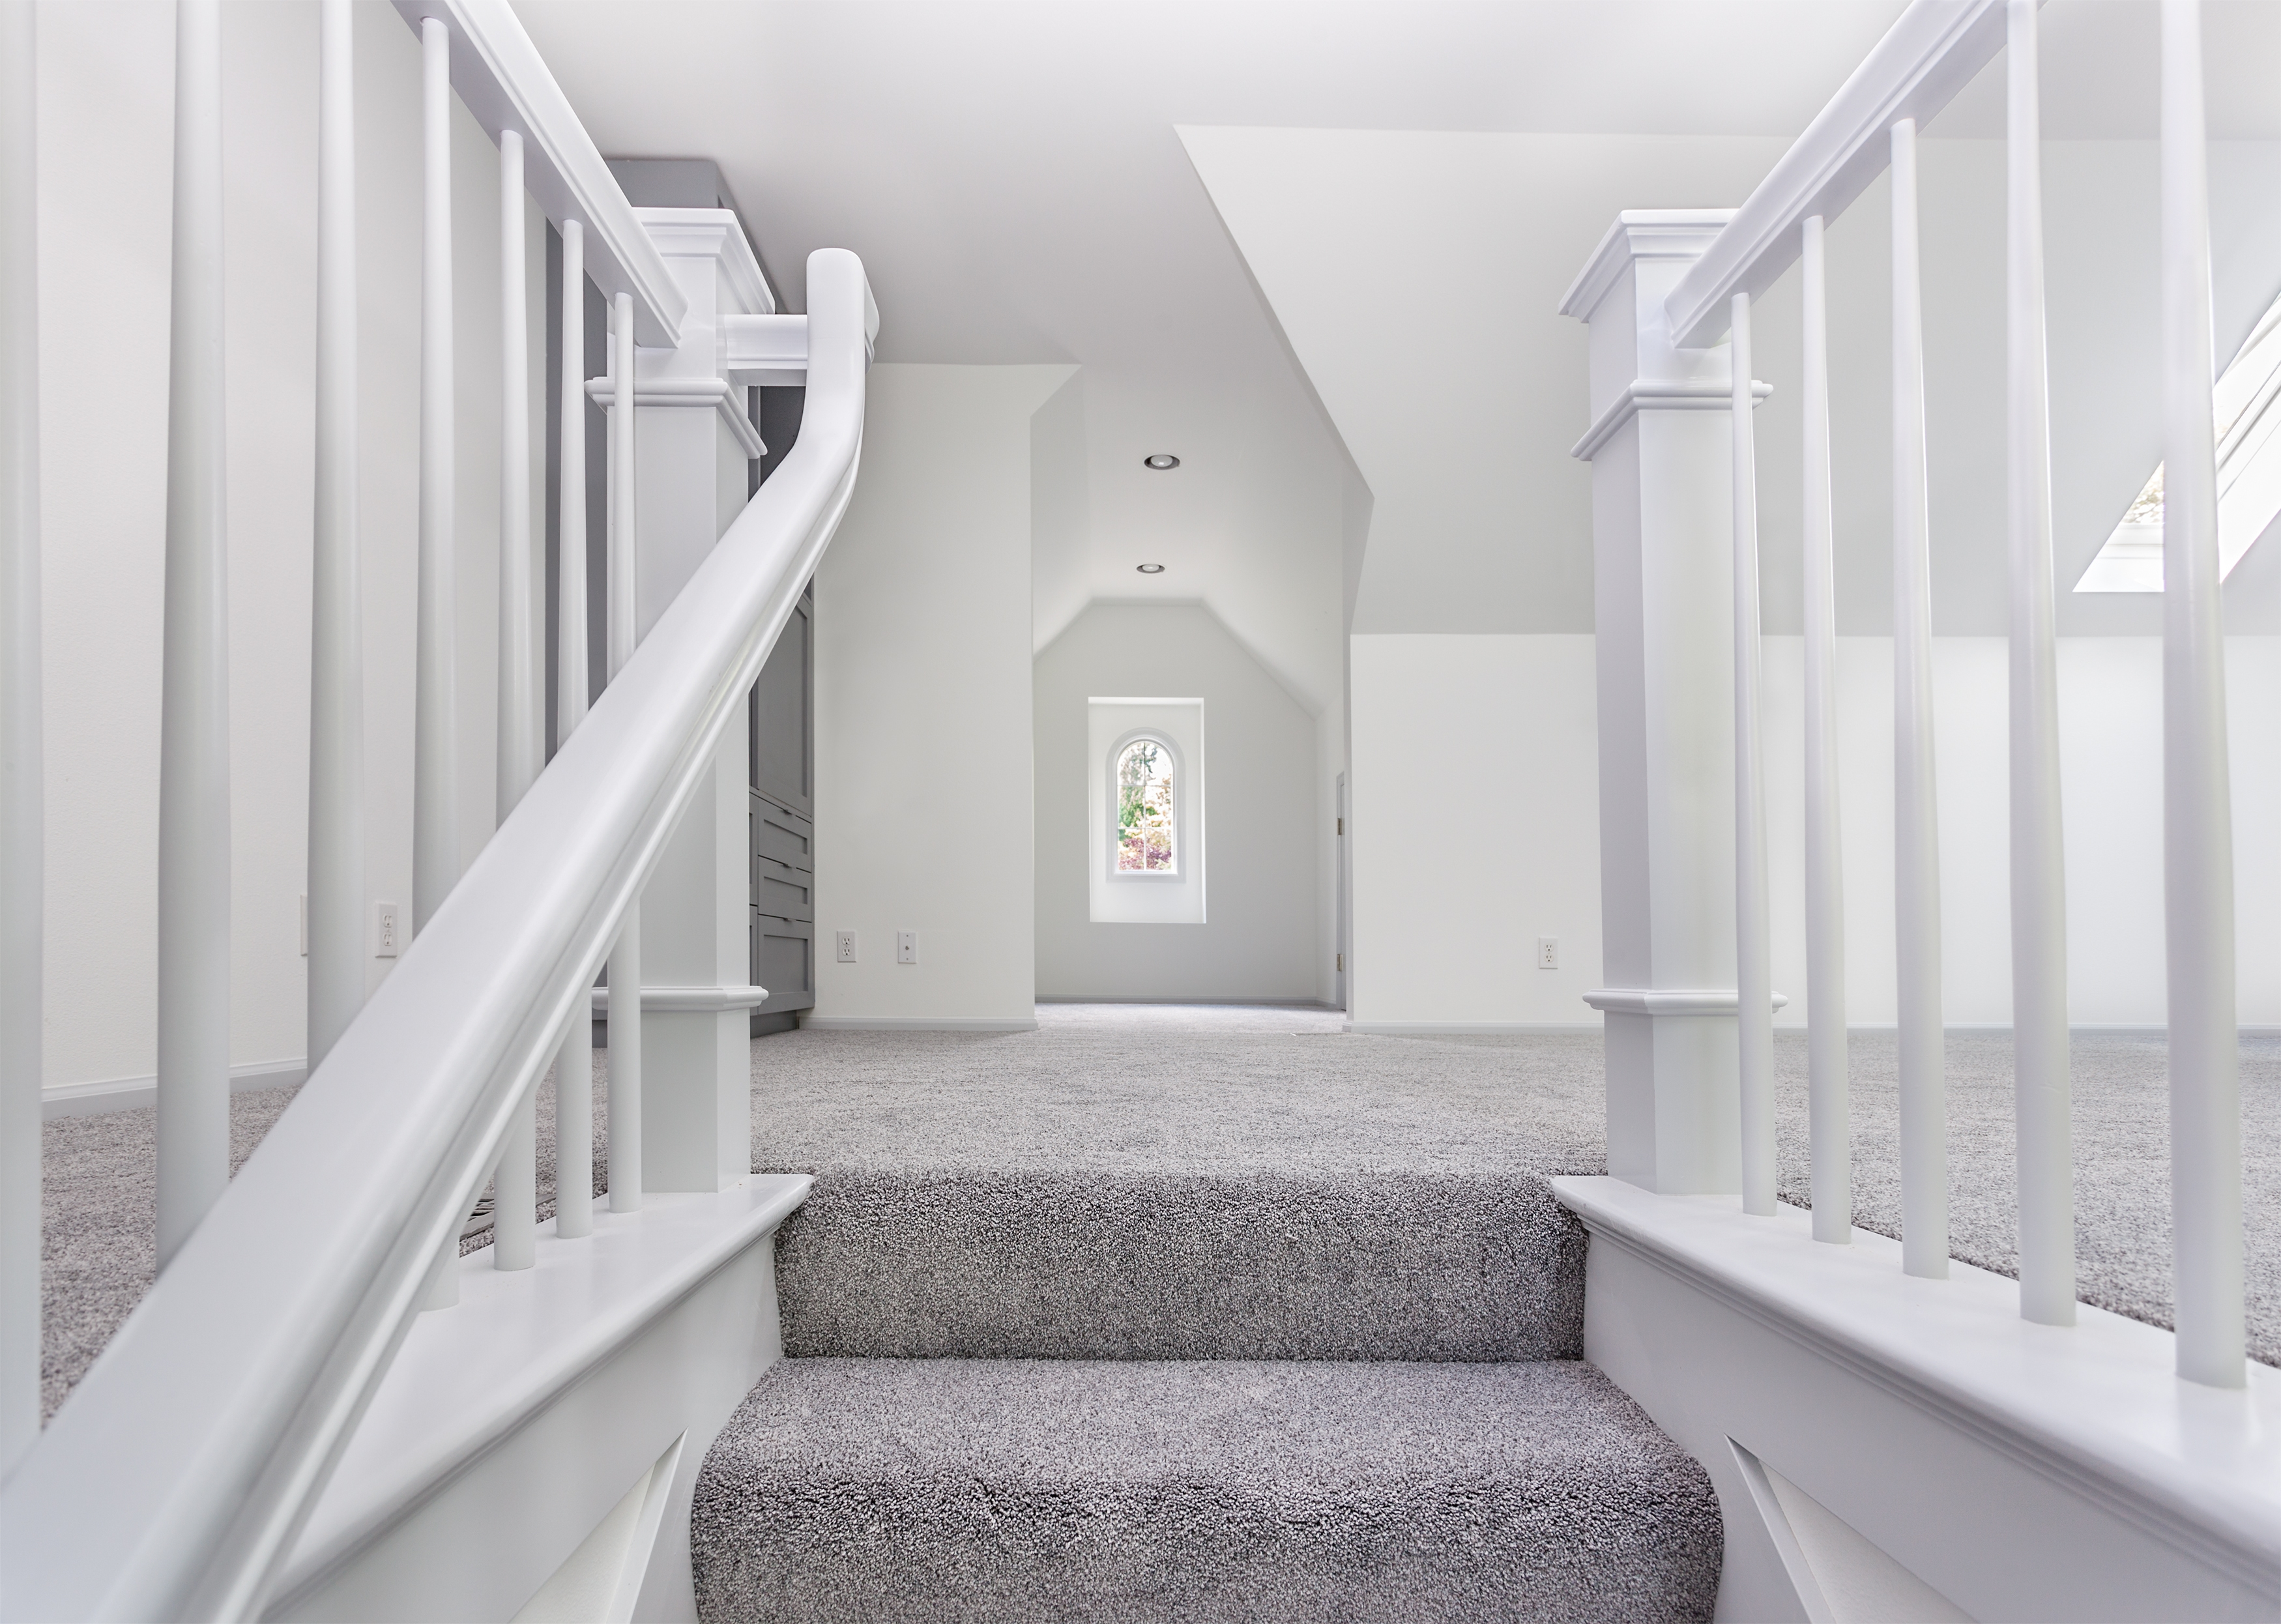 How To Lay Carpet On Stairs And The Landing Builddirectlearning   Carpet Down Middle Of Stairs   Hardwood   Benjamin Moore   Carpet Runner   Landing   Stair Tread